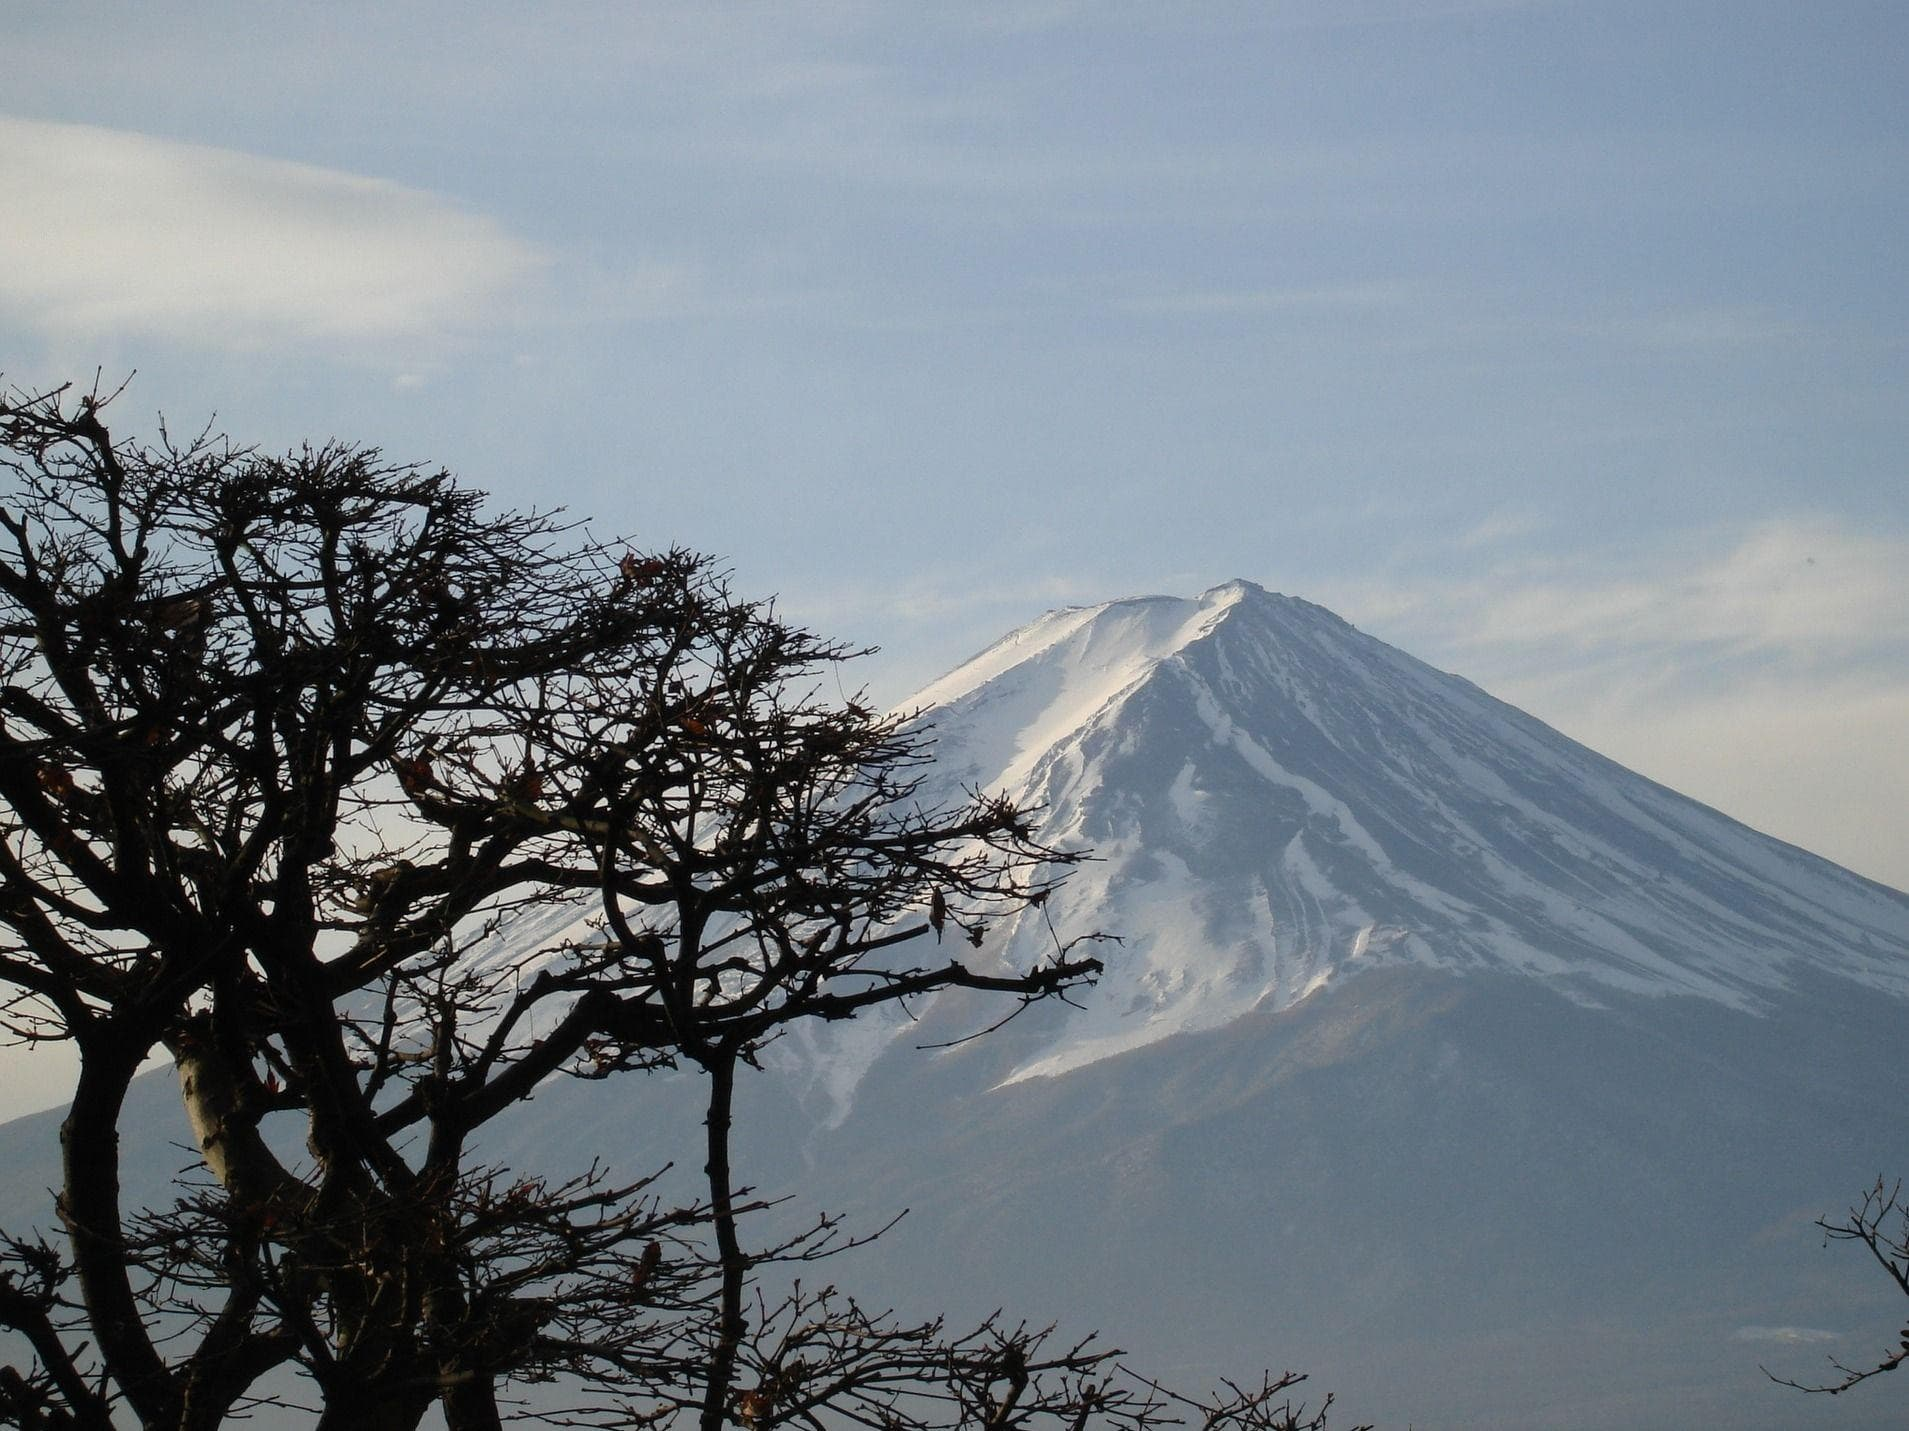 Random Haunting Facts About Japan's Suicide Forest